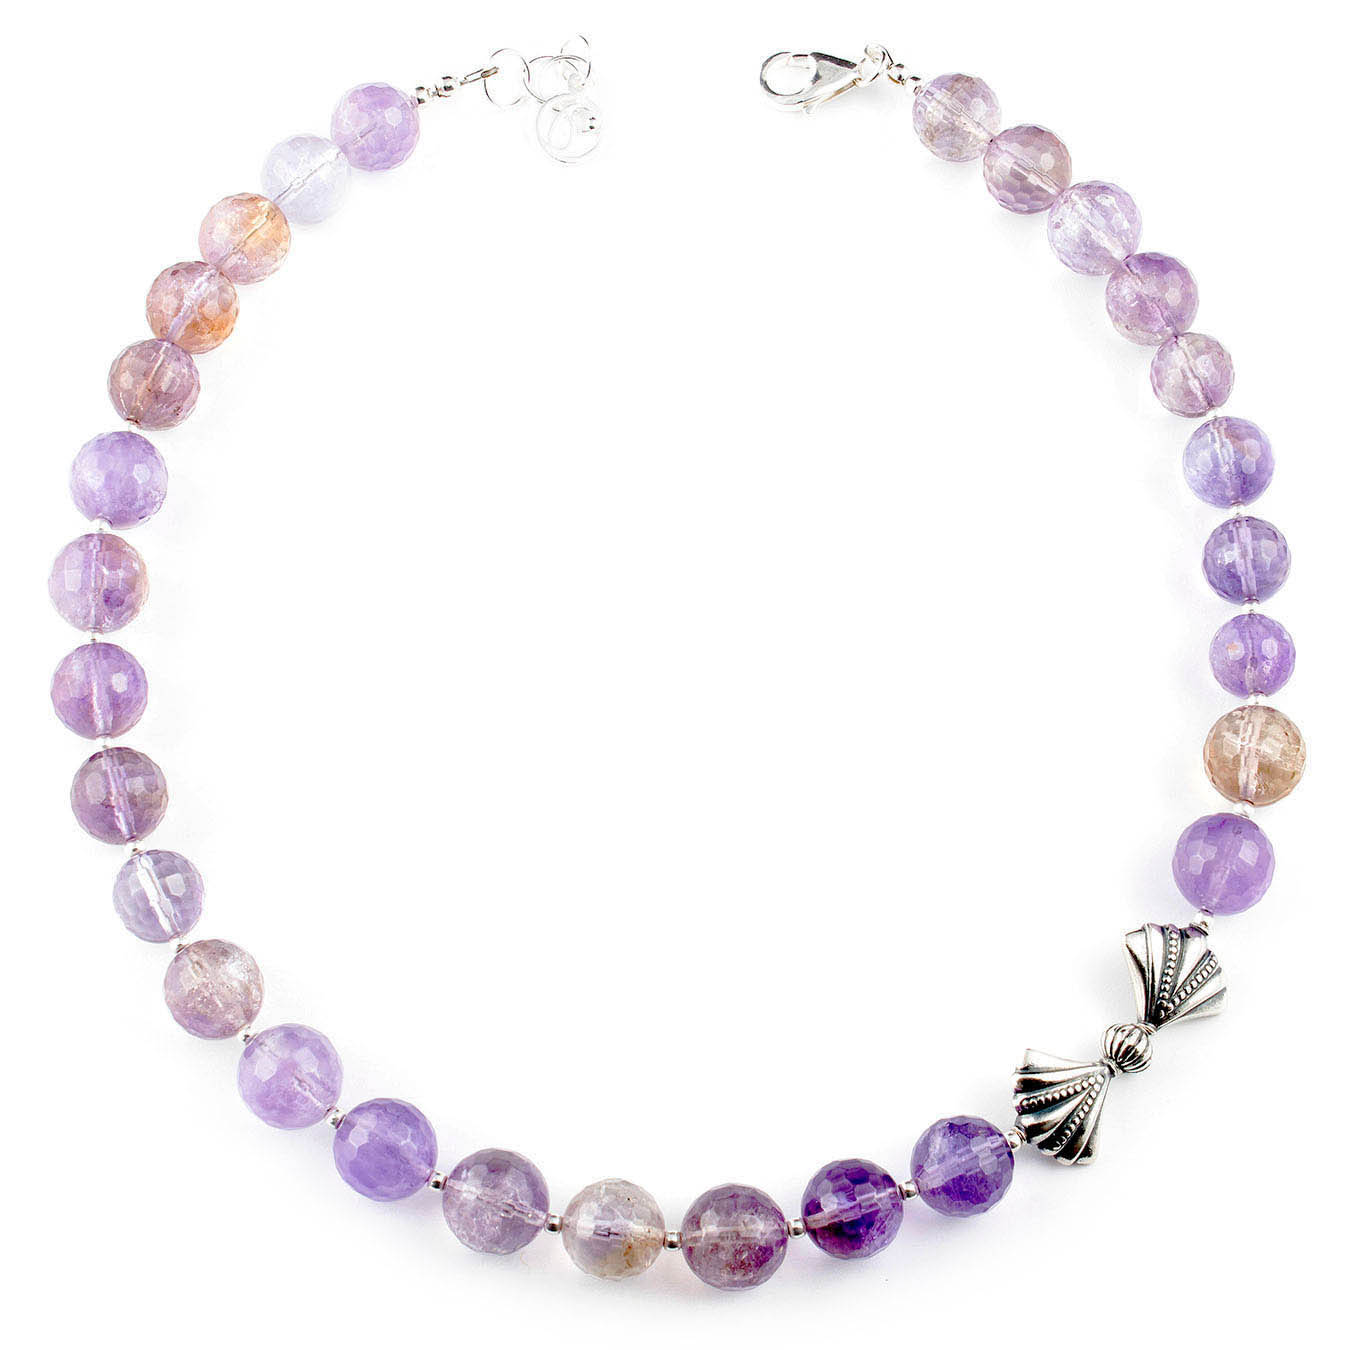 Choker style necklace set made with ametrine and bow tie bali silver